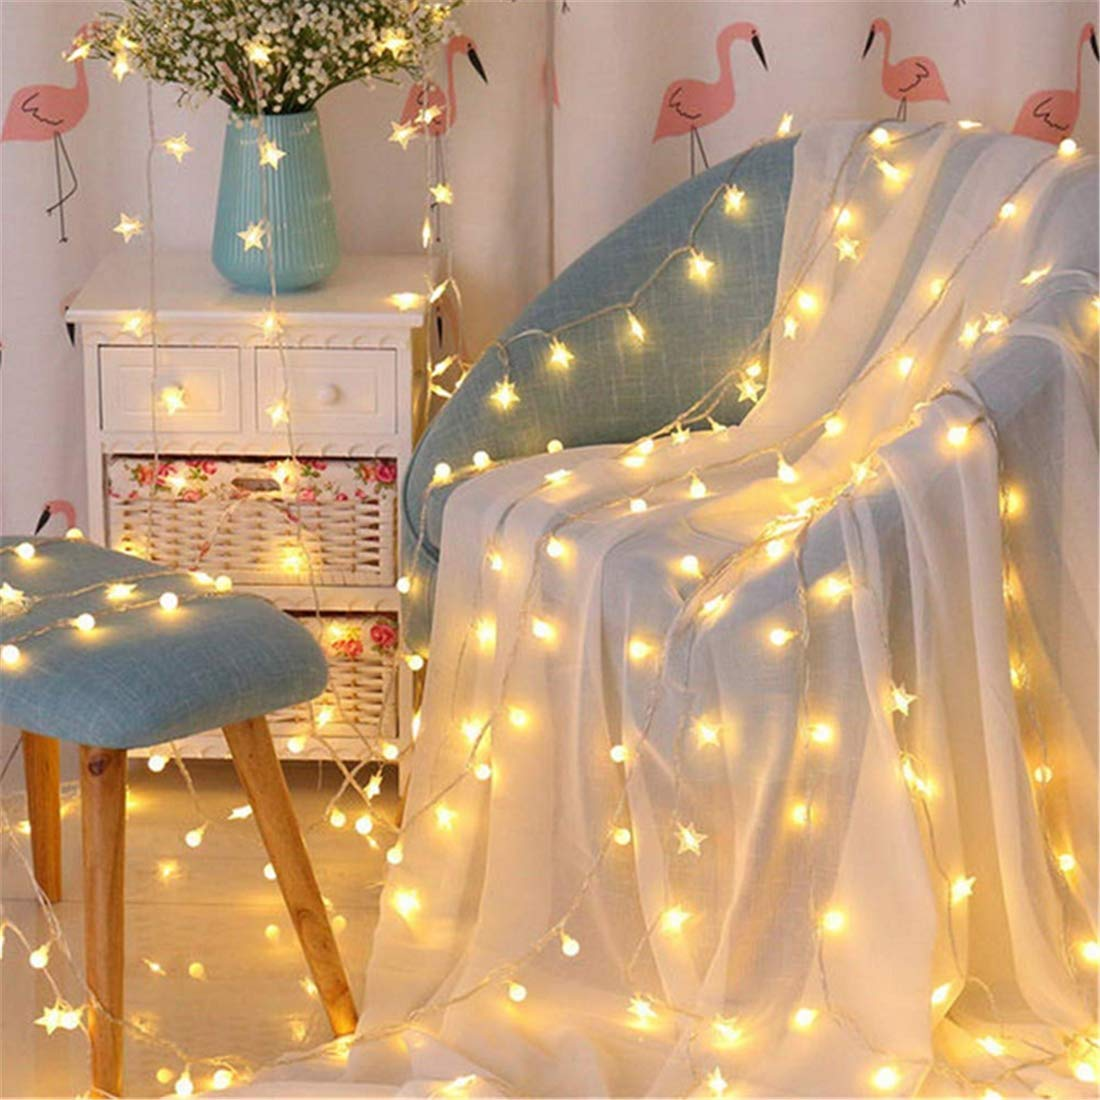 Chandelierstring Lights Led Decoration Small Lights Room Layout Decoration Network rot Lights Stars Warm Farbe 10 Meters 80 Lights Battery [Energy Class A+]